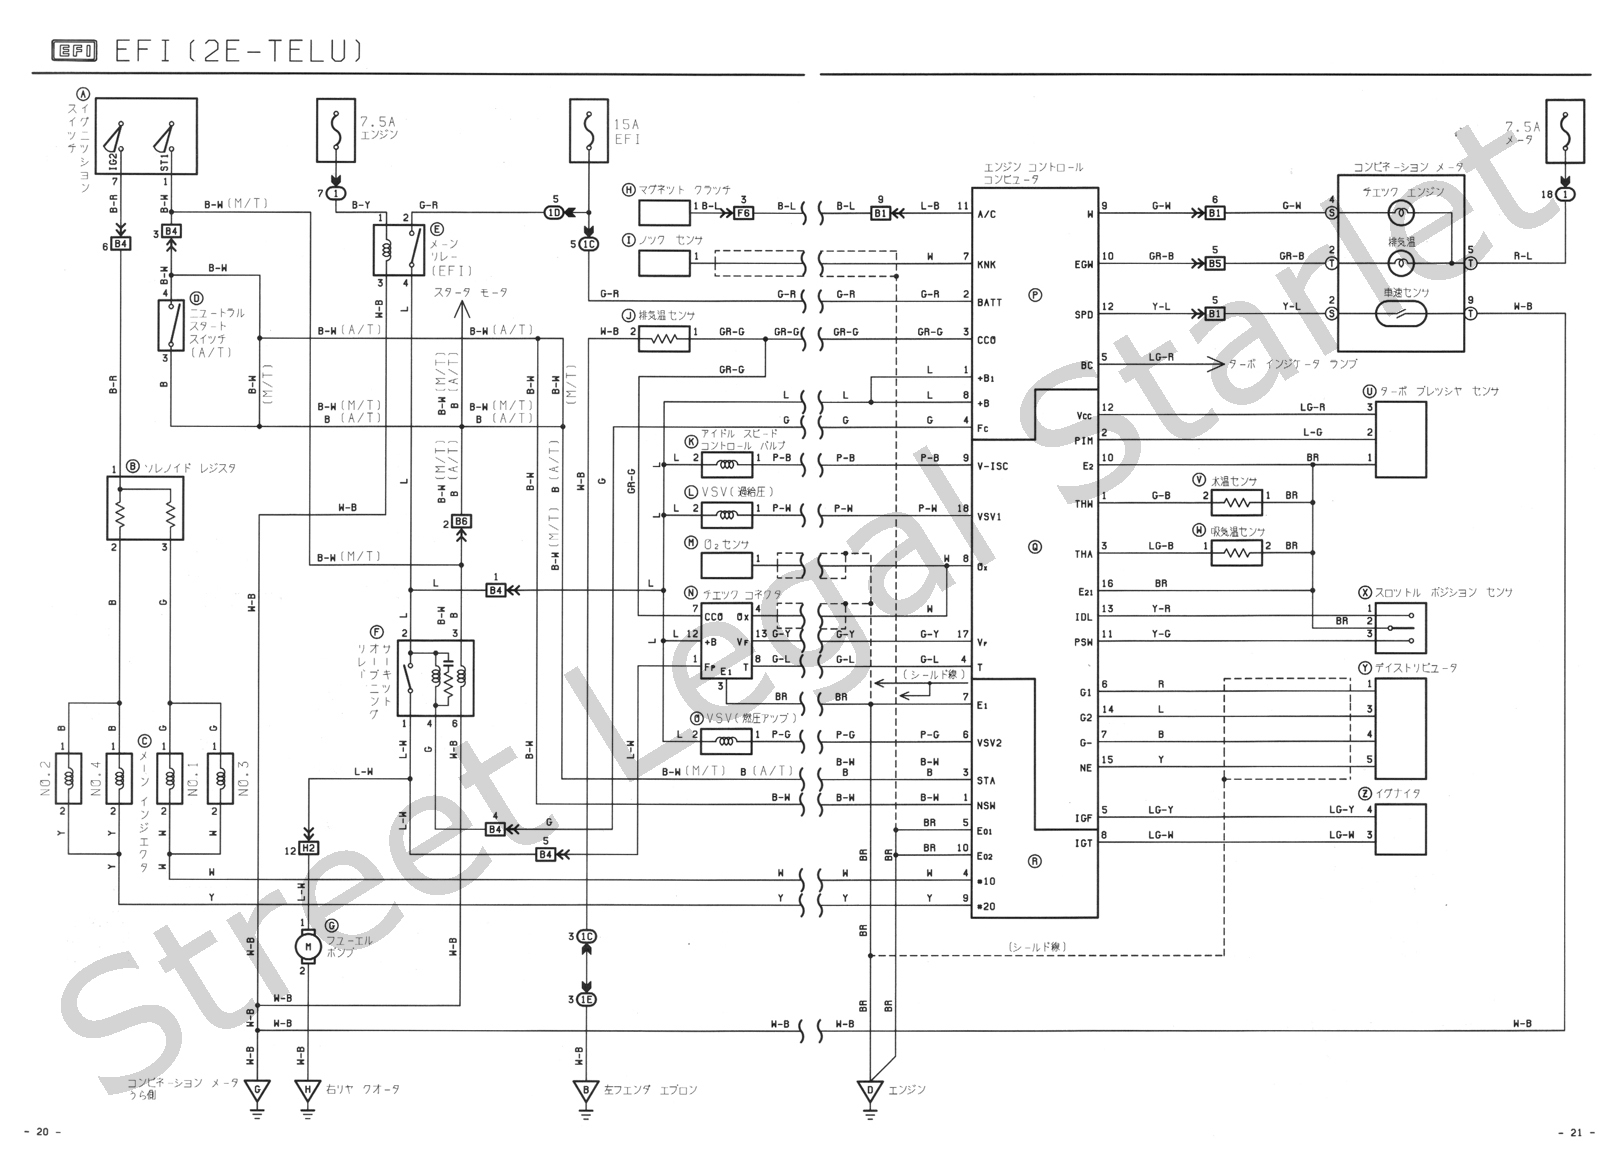 SLS EP71 Wiring diagram 2e telu index of wiki ecu wiring diagrams toyota starlet ep82 iginition wiring diagram at n-0.co